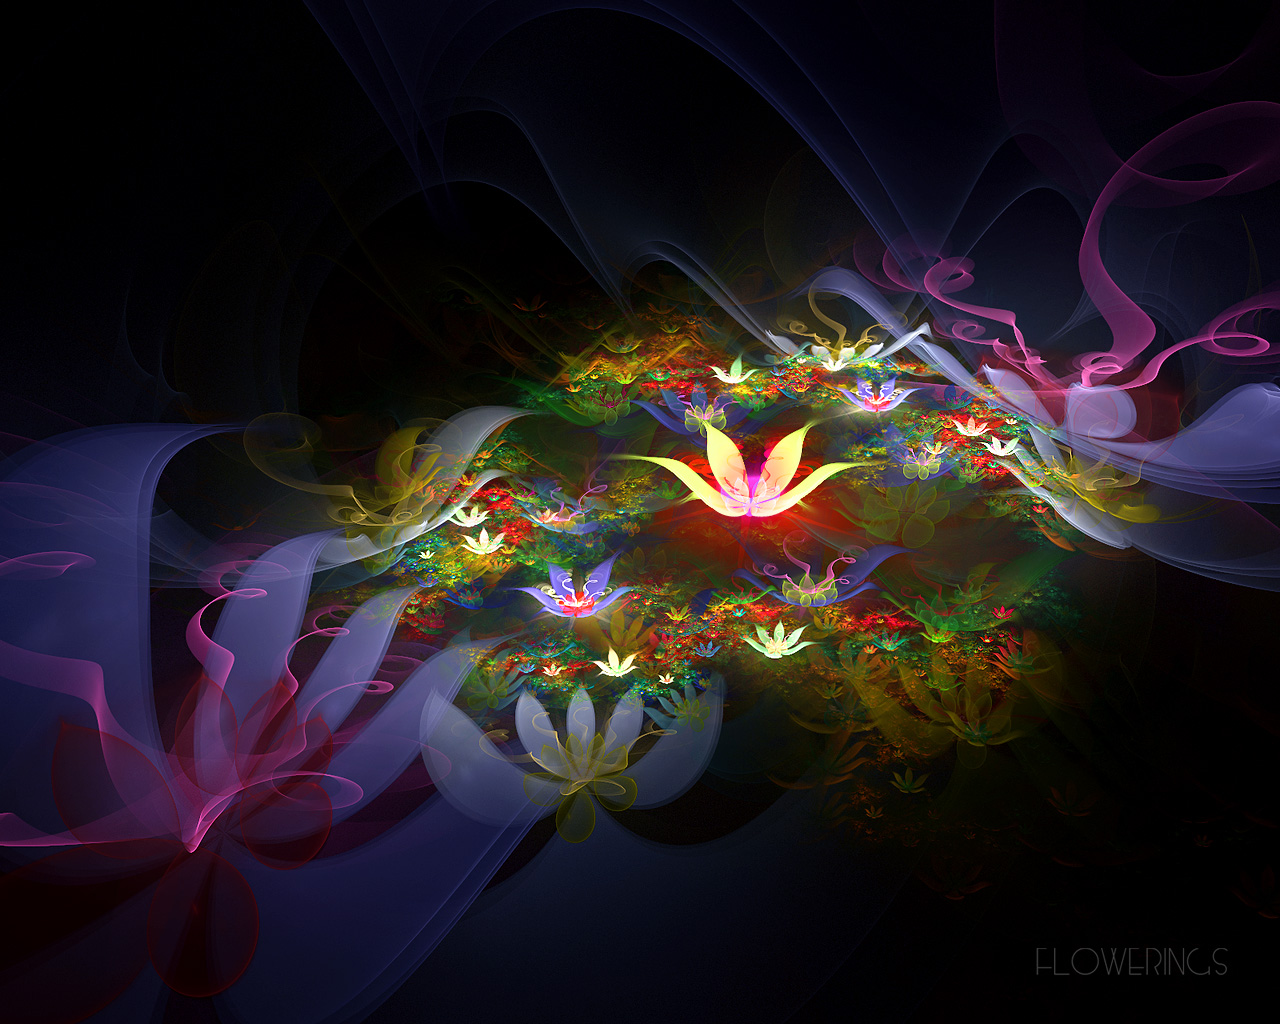 3d Flowers HD Wallpaper Download | Hd Wallpapers 2u Free Download